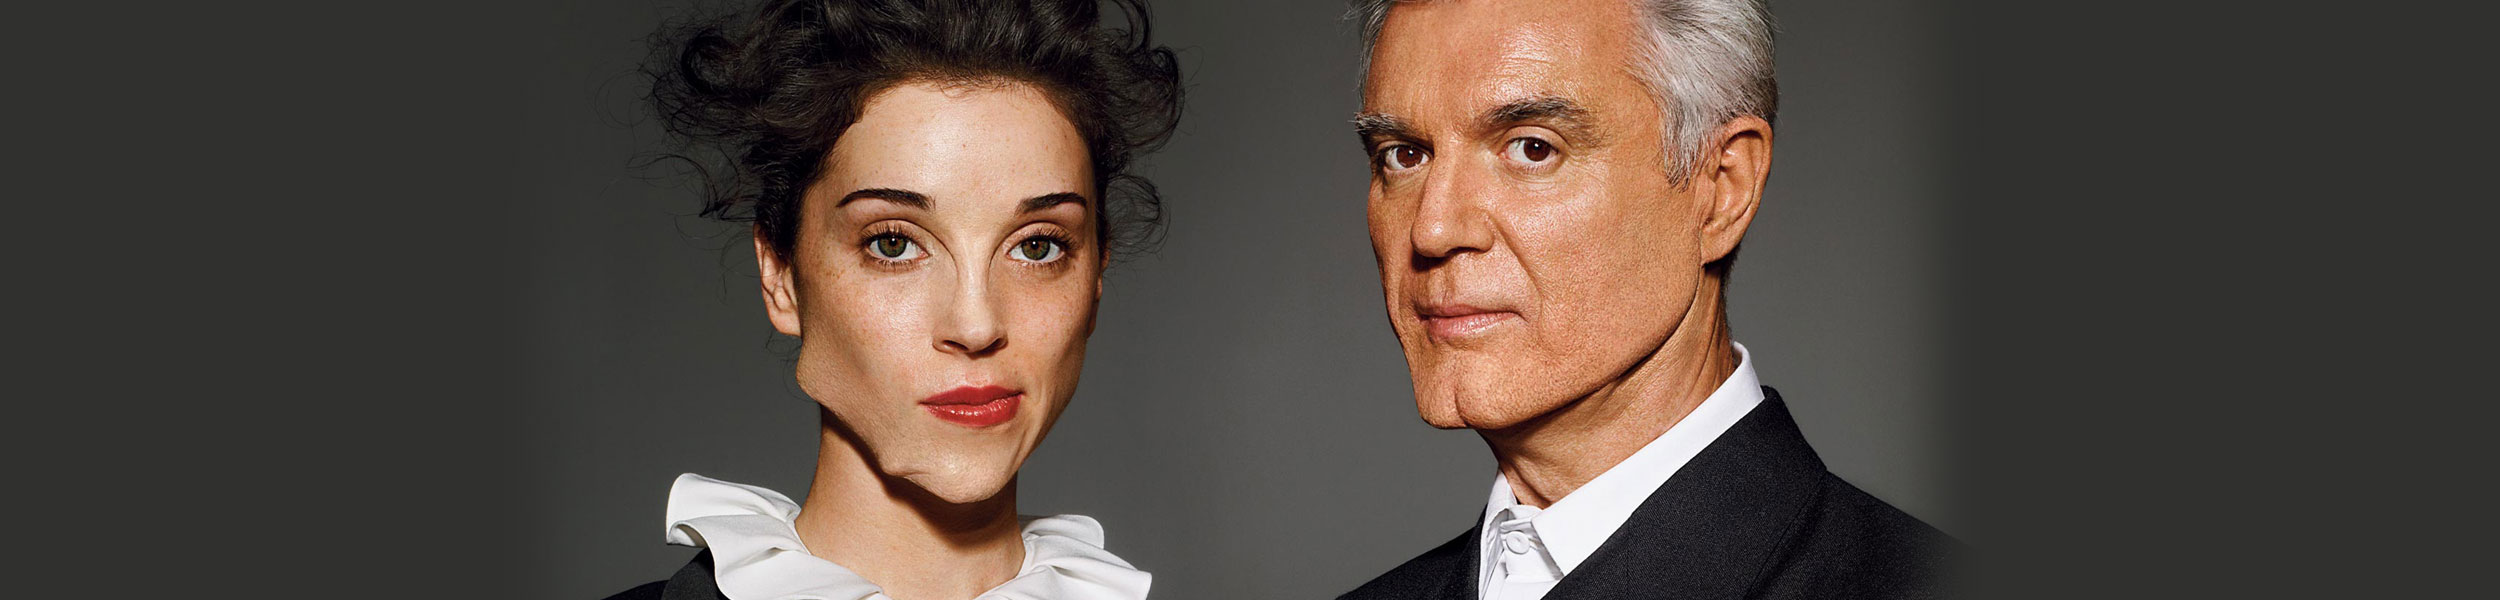 David Byrne & St. Vincent - David Byrne & St. Vincent's Love This Giant Out This Week